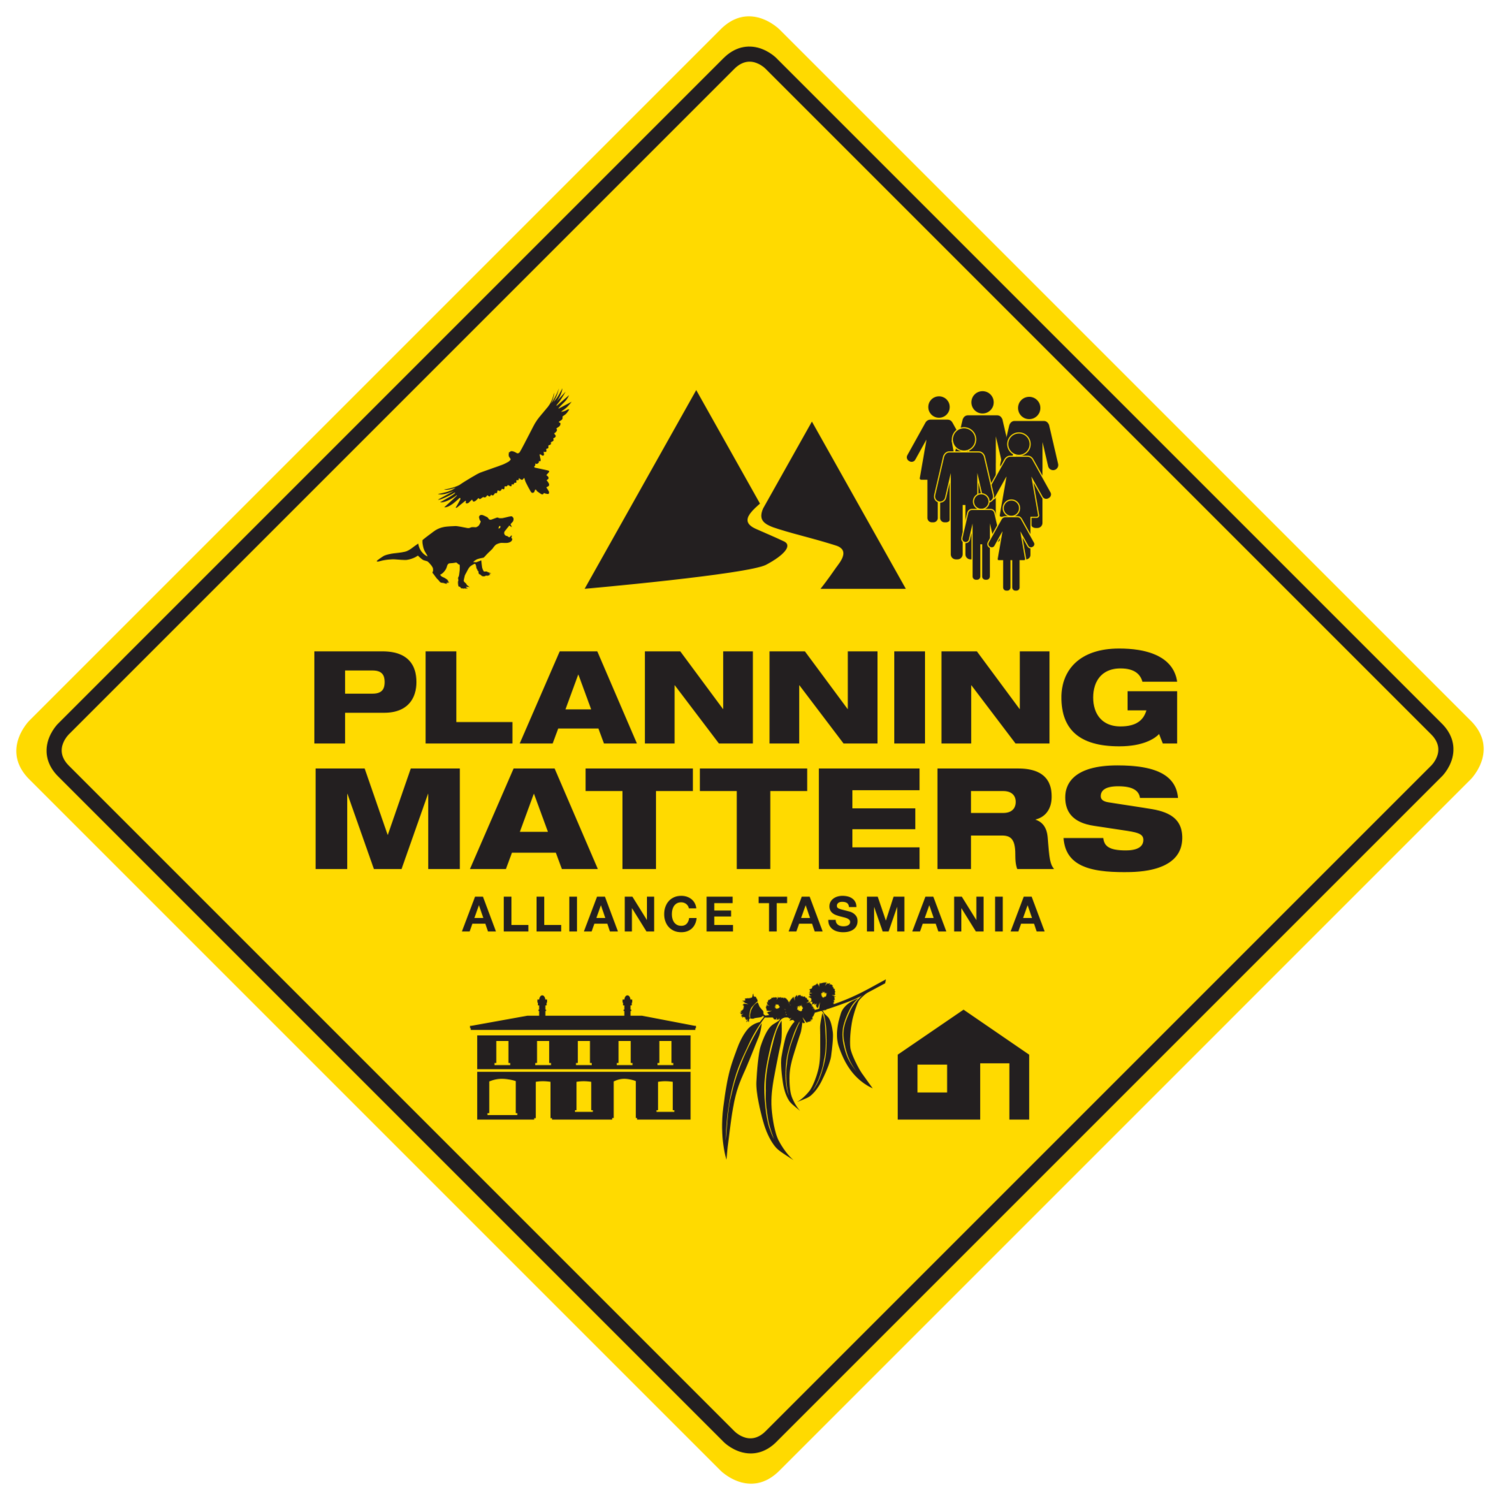 Planning Matters Alliance Tasmania